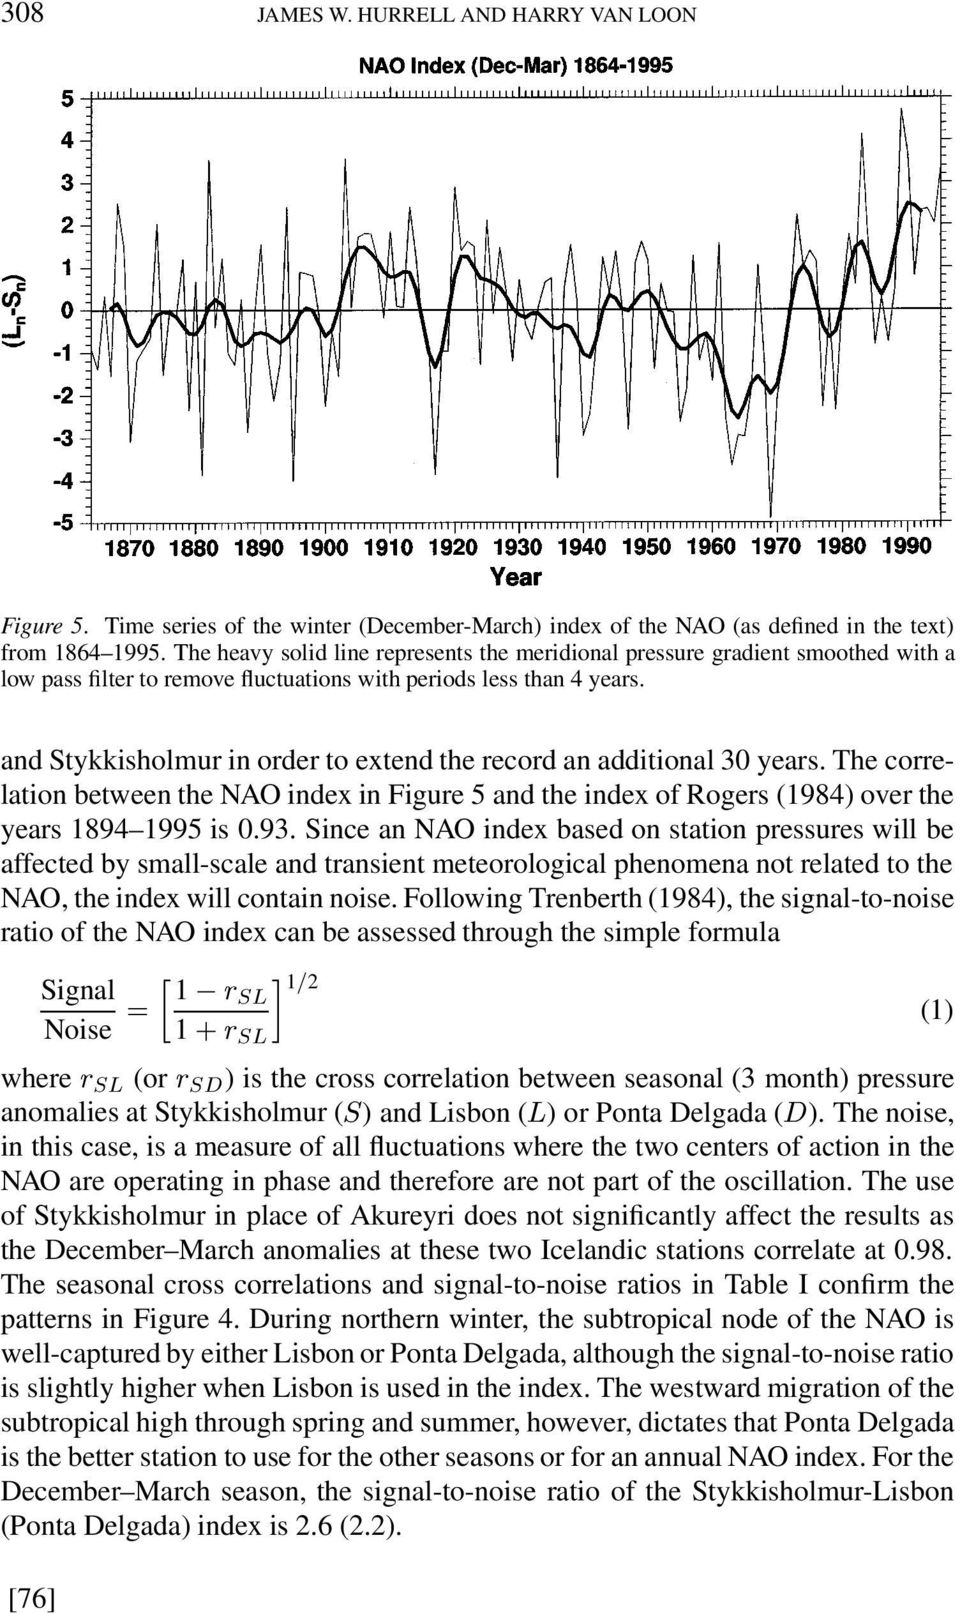 and Stykkisholmur in order to extend the record an additional 30 years. The correlation between the NAO index in Figure 5 and the index of Rogers (1984) over the years 1894 1995 is 0.93.